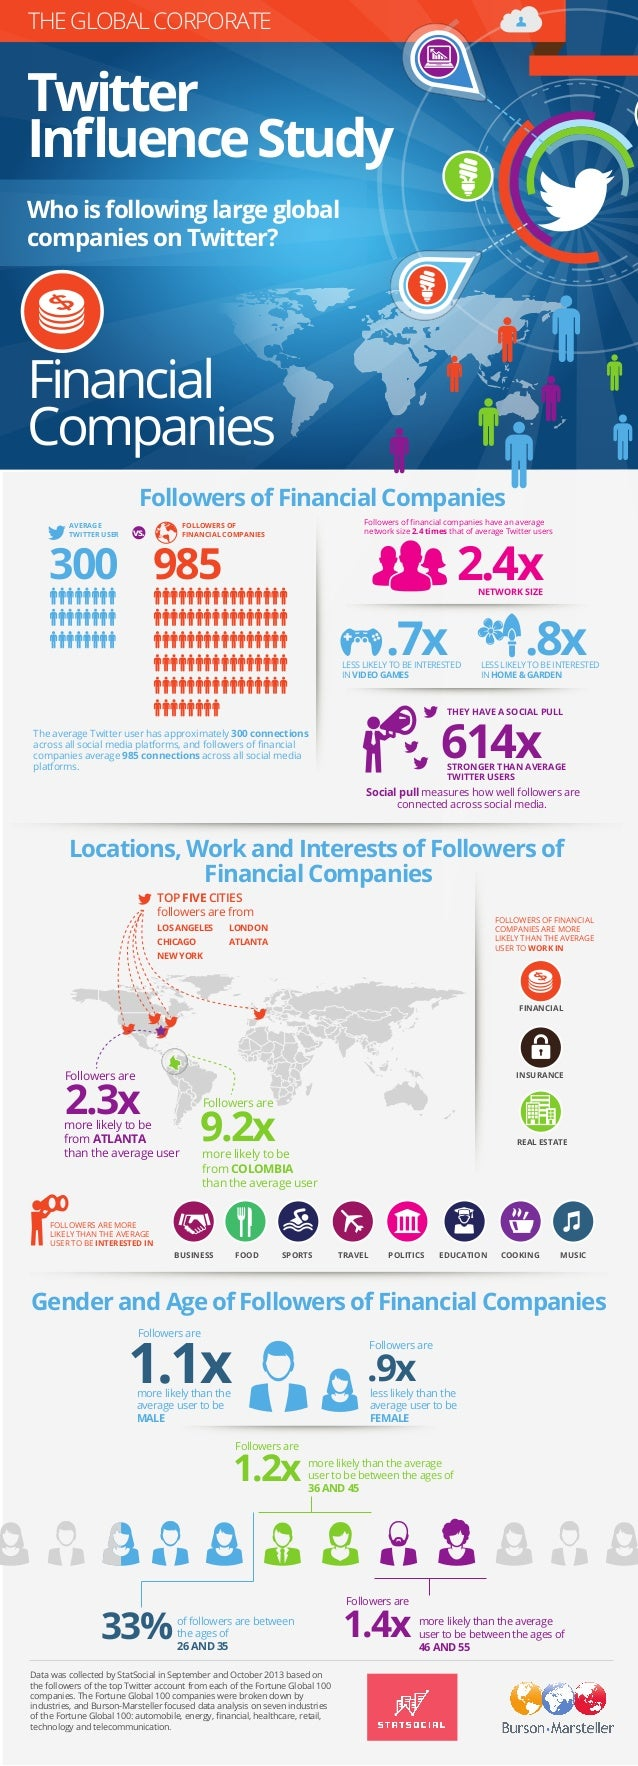 Burson-Marsteller Global Corporate Twitter Influence Study: Financial Companies